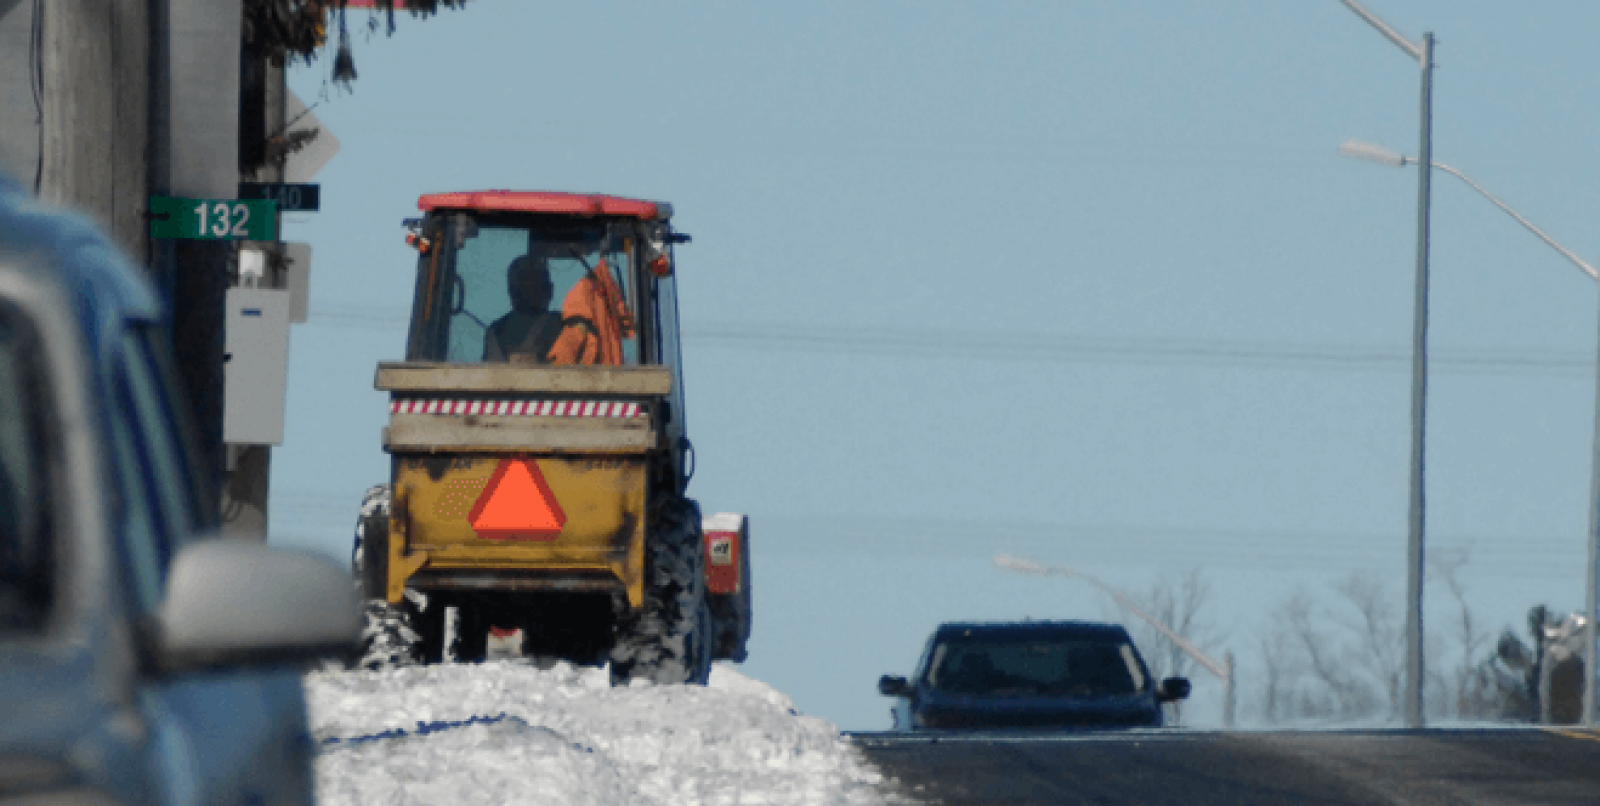 Research update: Snow and ice control in parking lots